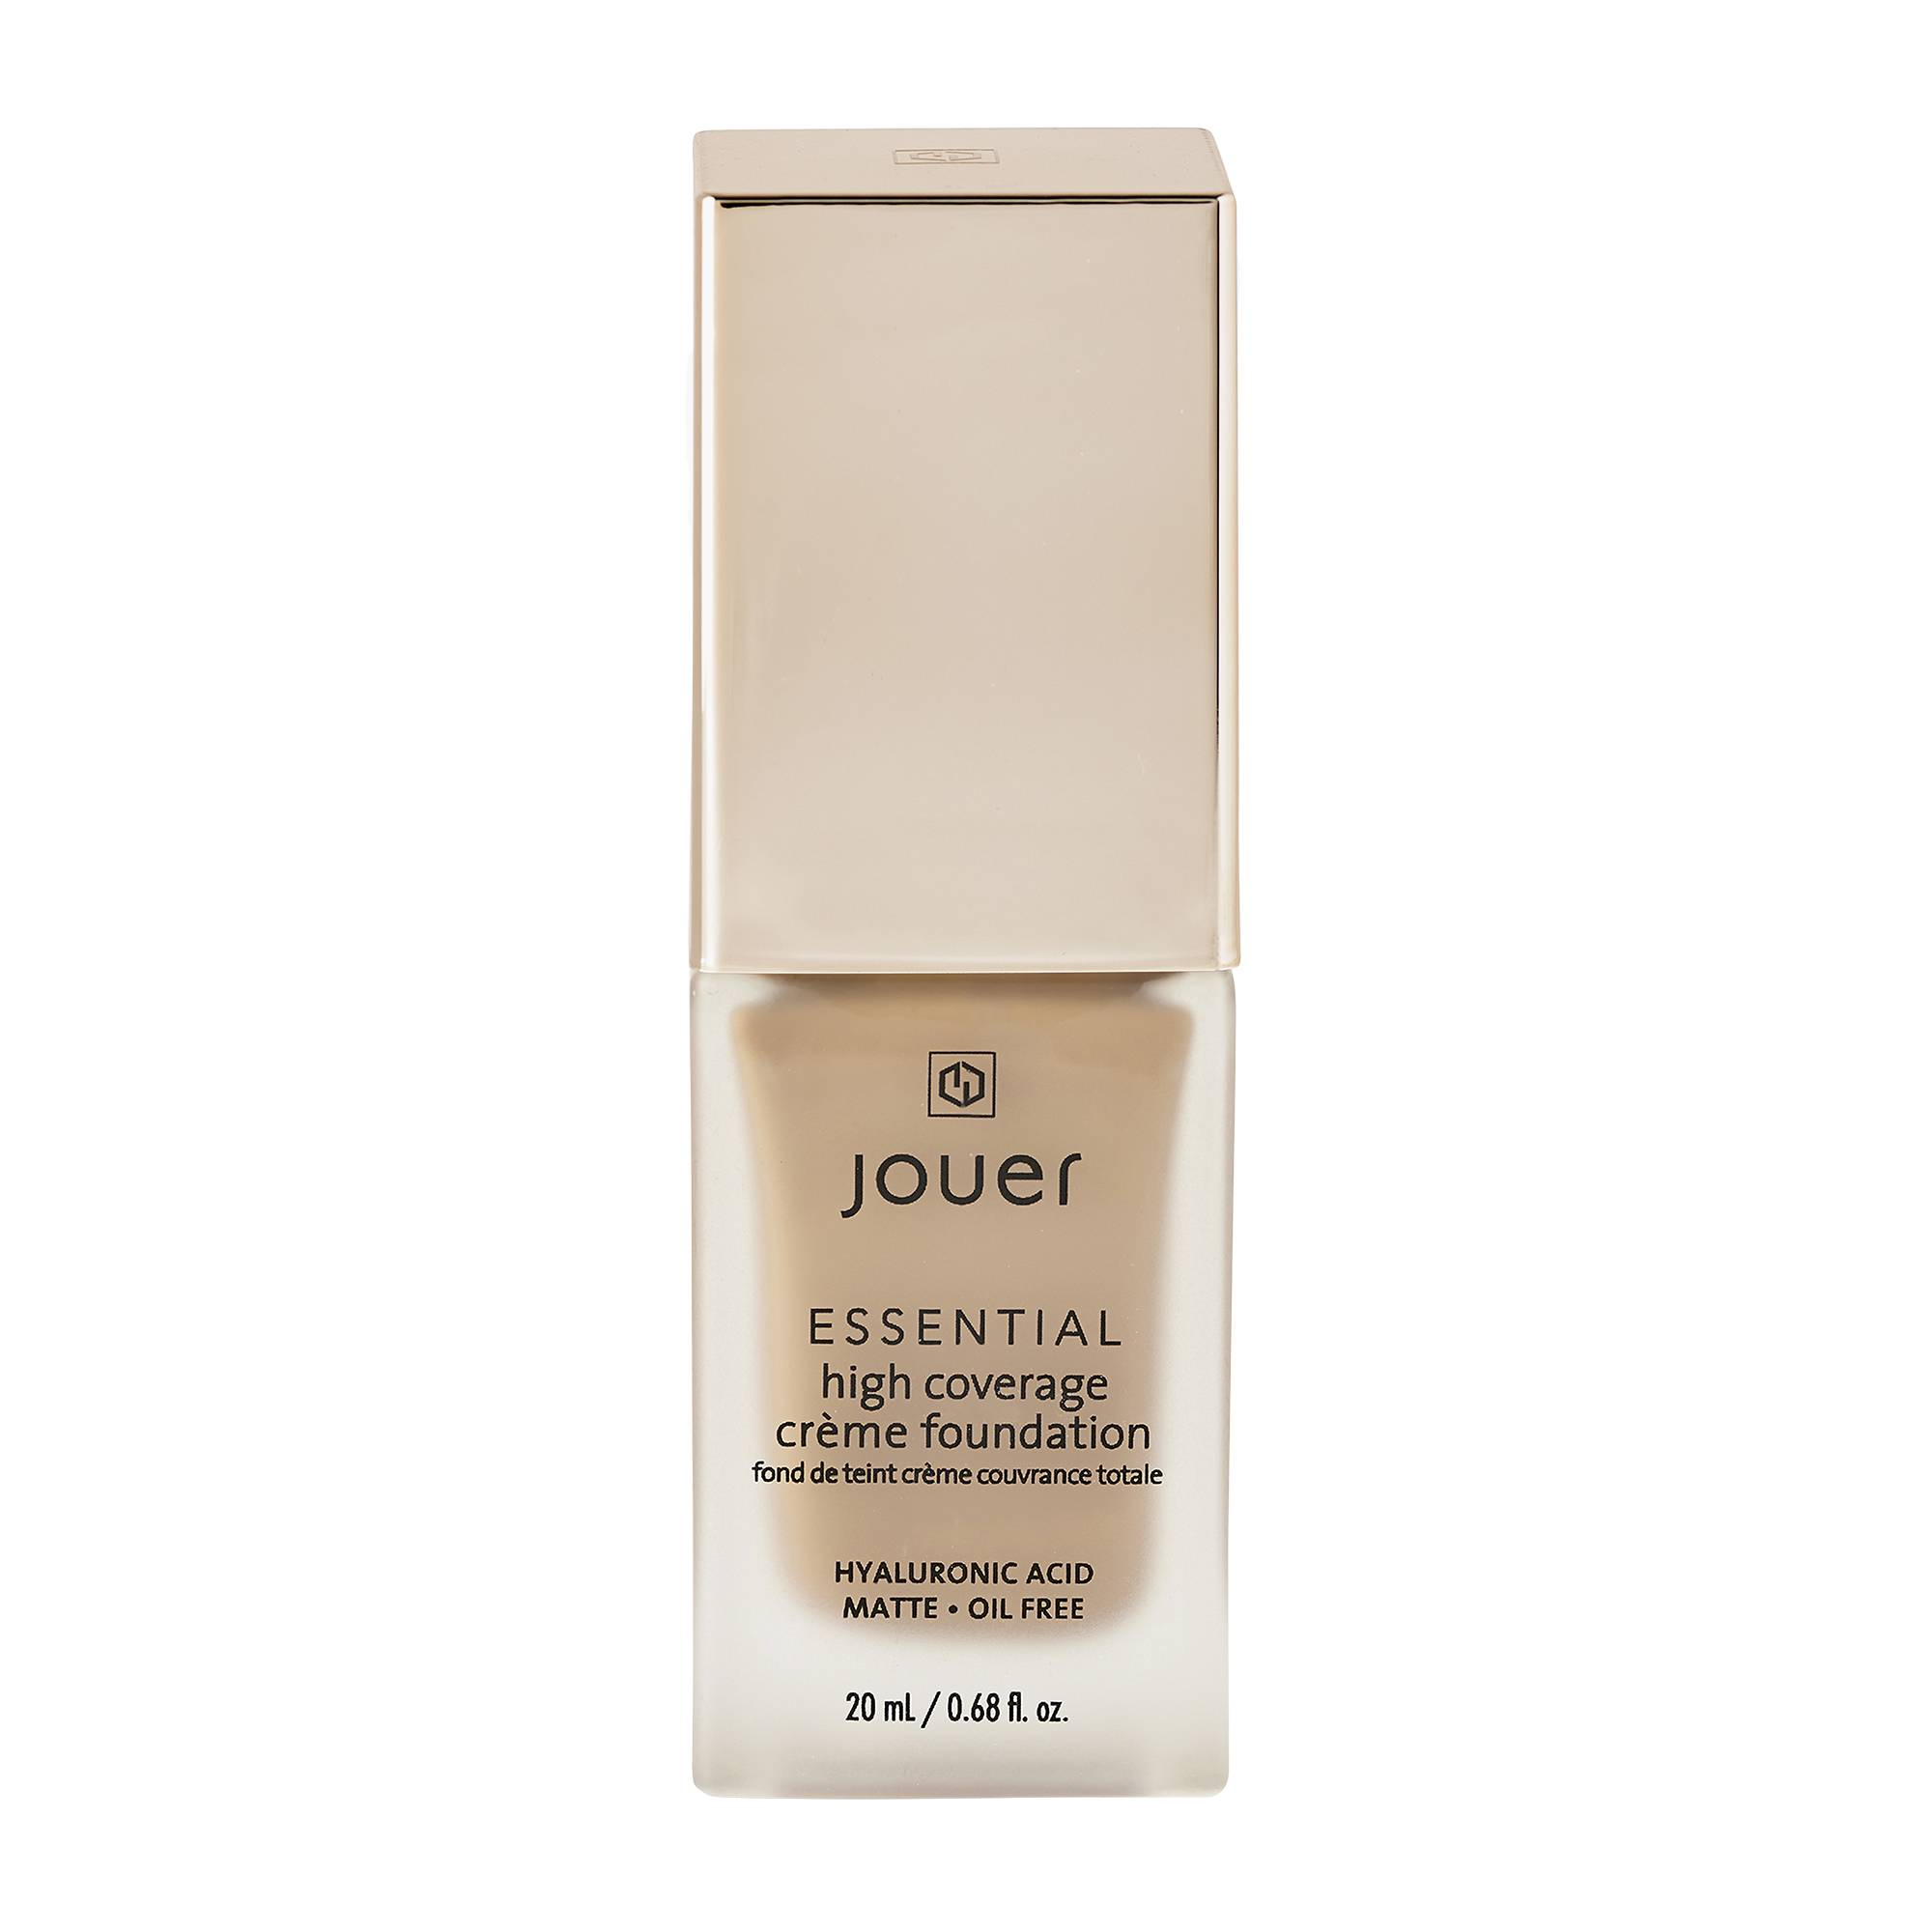 Jouer Cosmetics Essential High Coverage Creme Foundation Maple 20ml